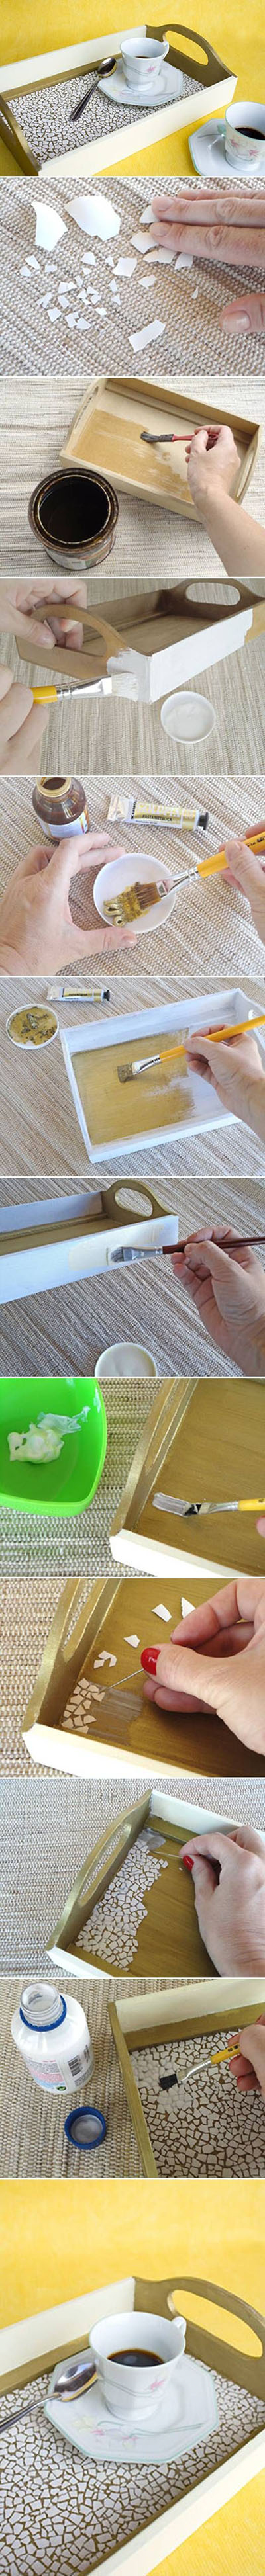 13 DIY Eggshell Mosaic Tray DIY Projects 5e63223253e